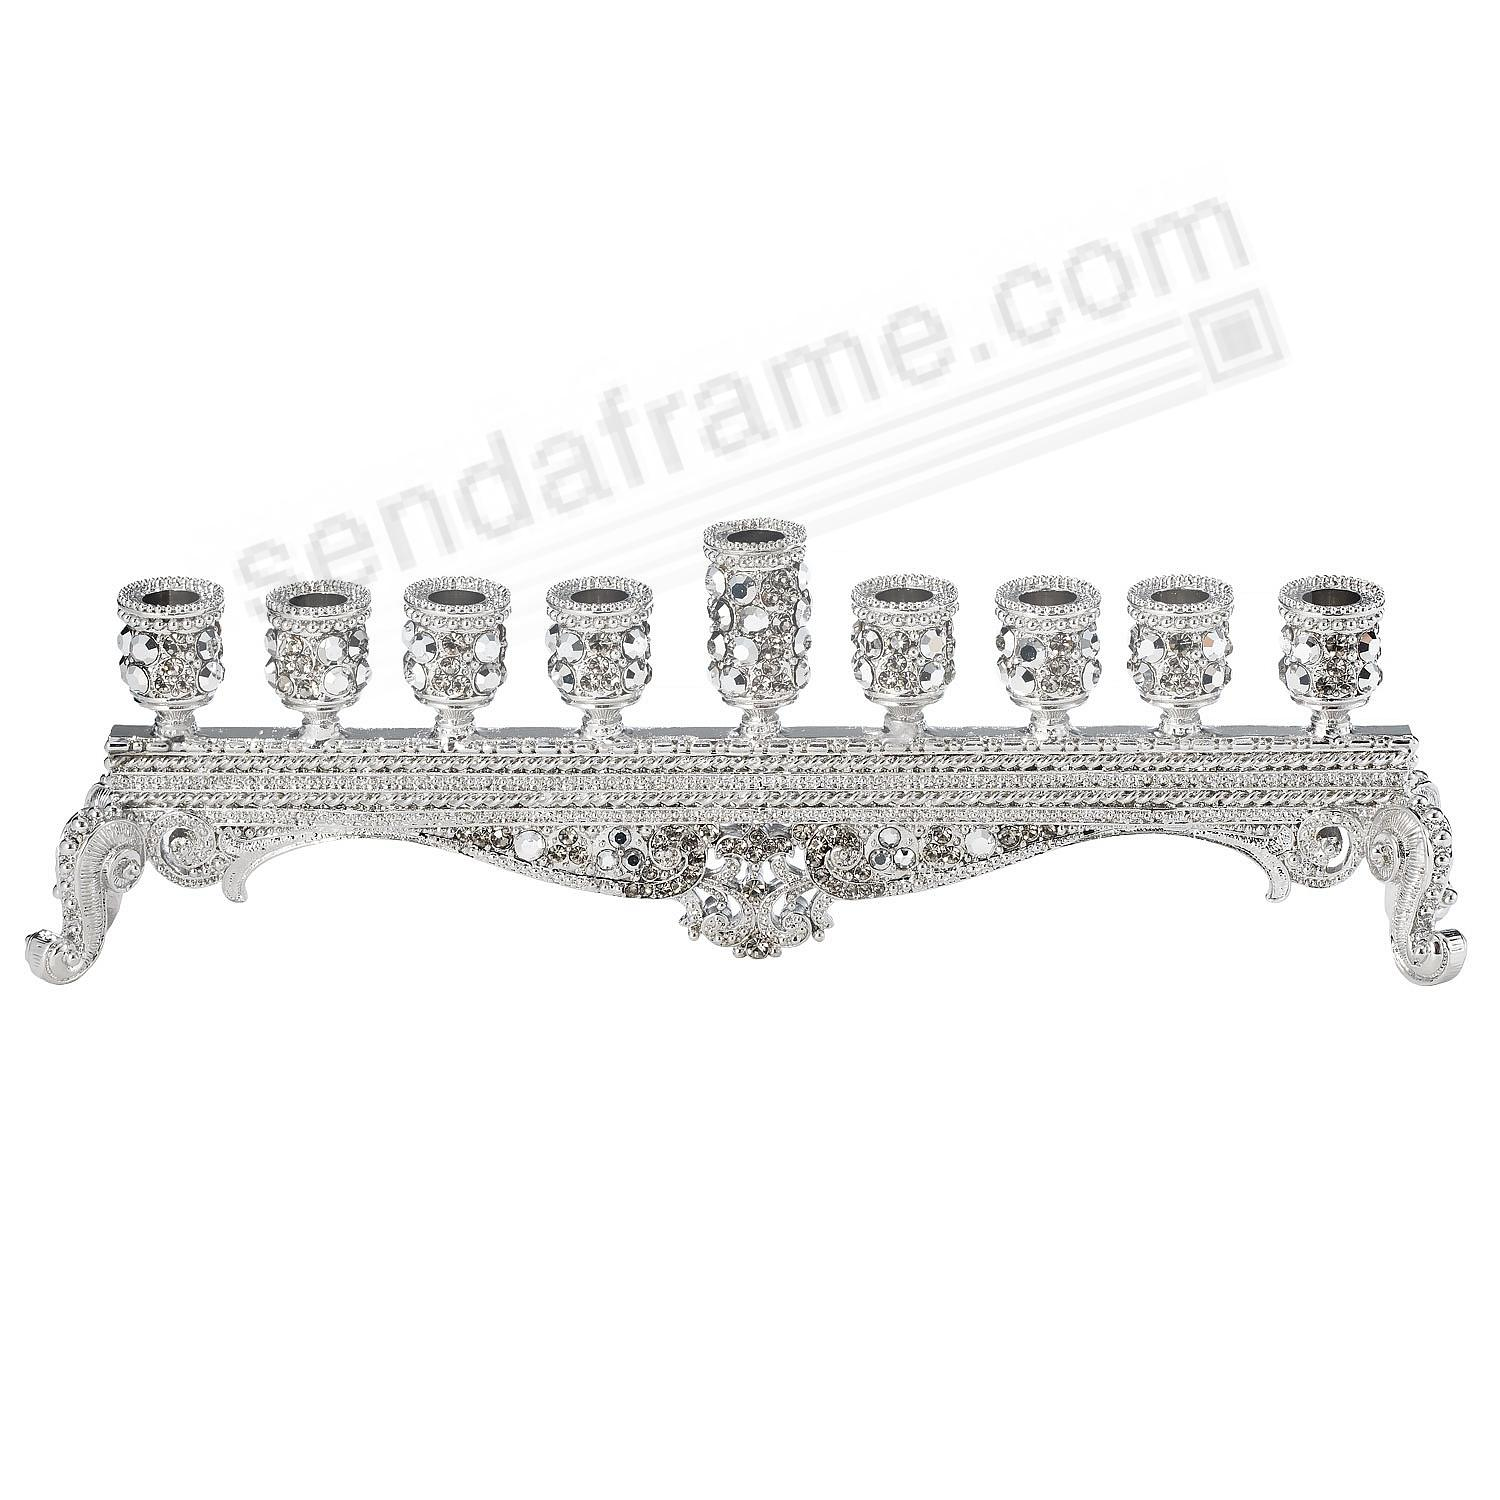 The ABBY CRYSTAL MENORAH by Olivia Riegel®